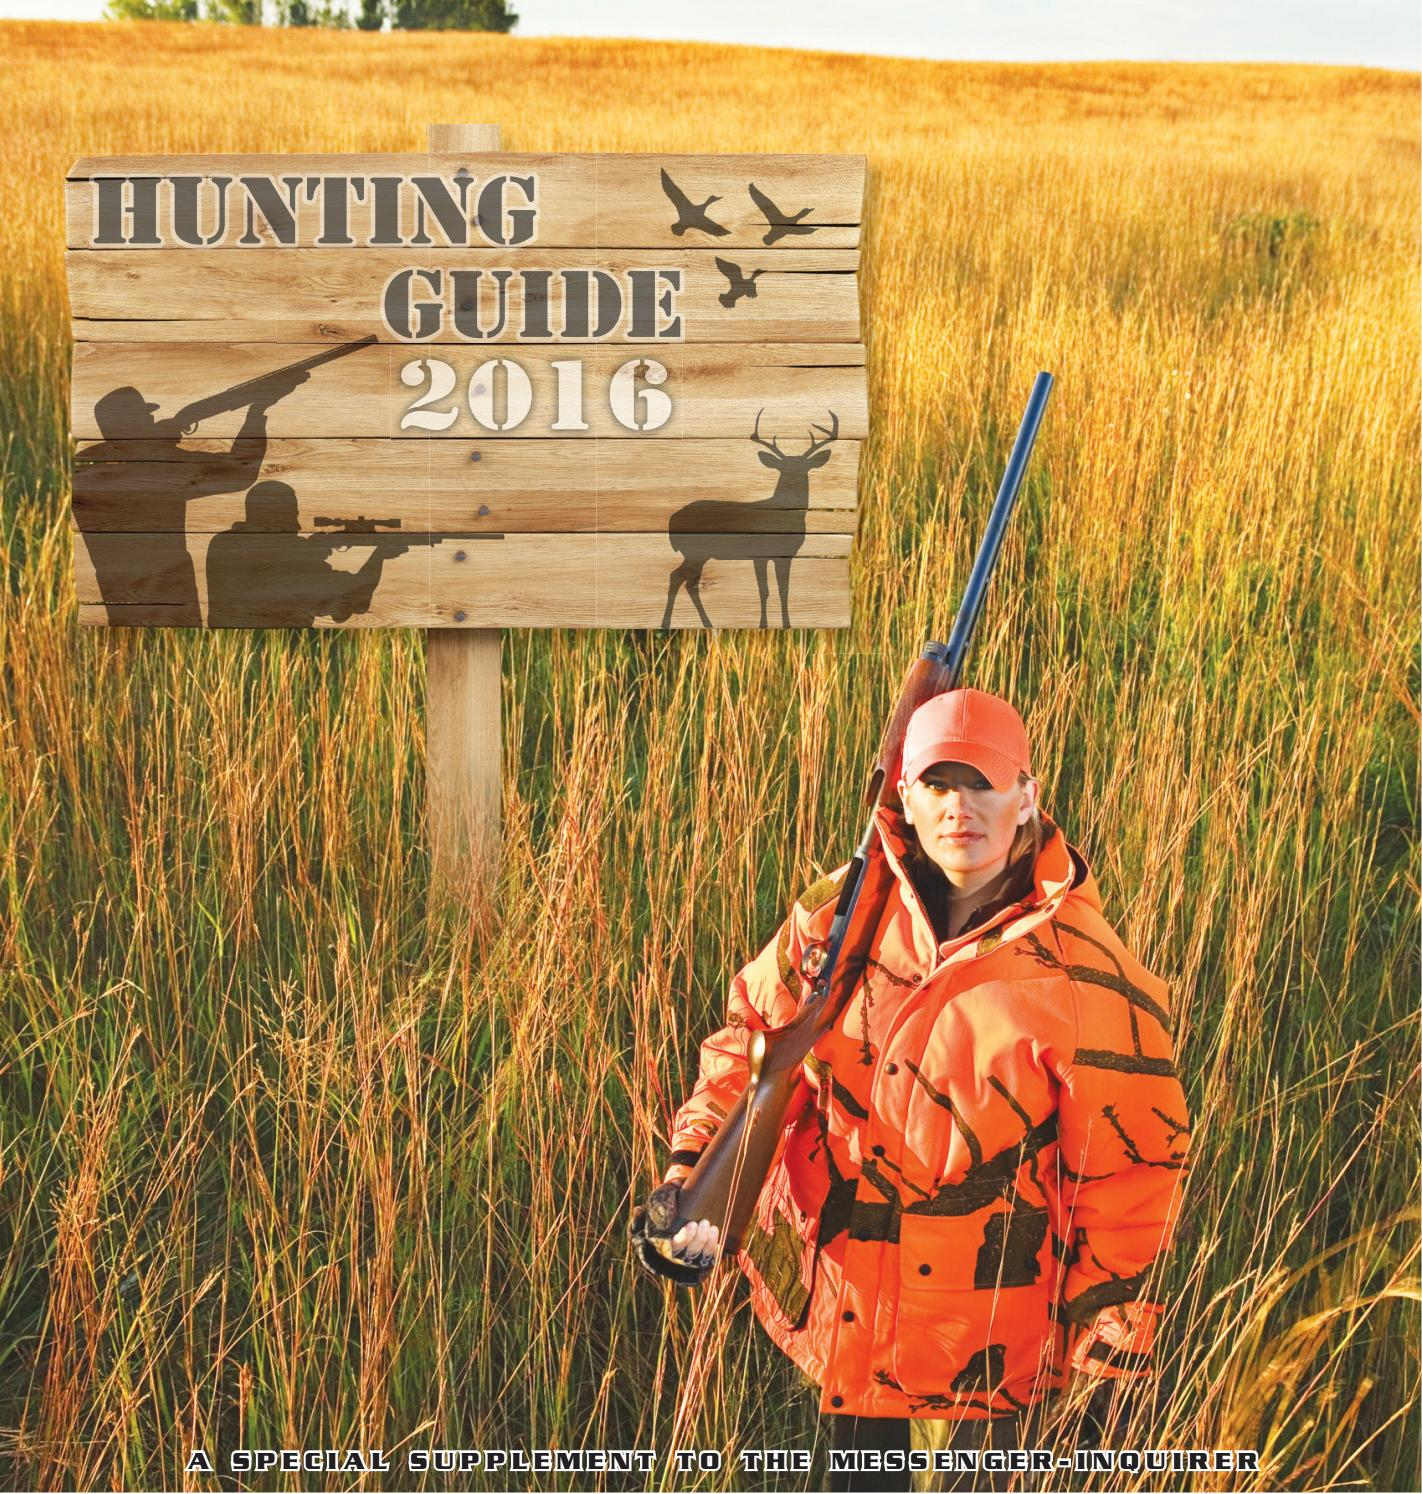 2016 hunting guide by messenger inquirer issuu for Kmart fishing license